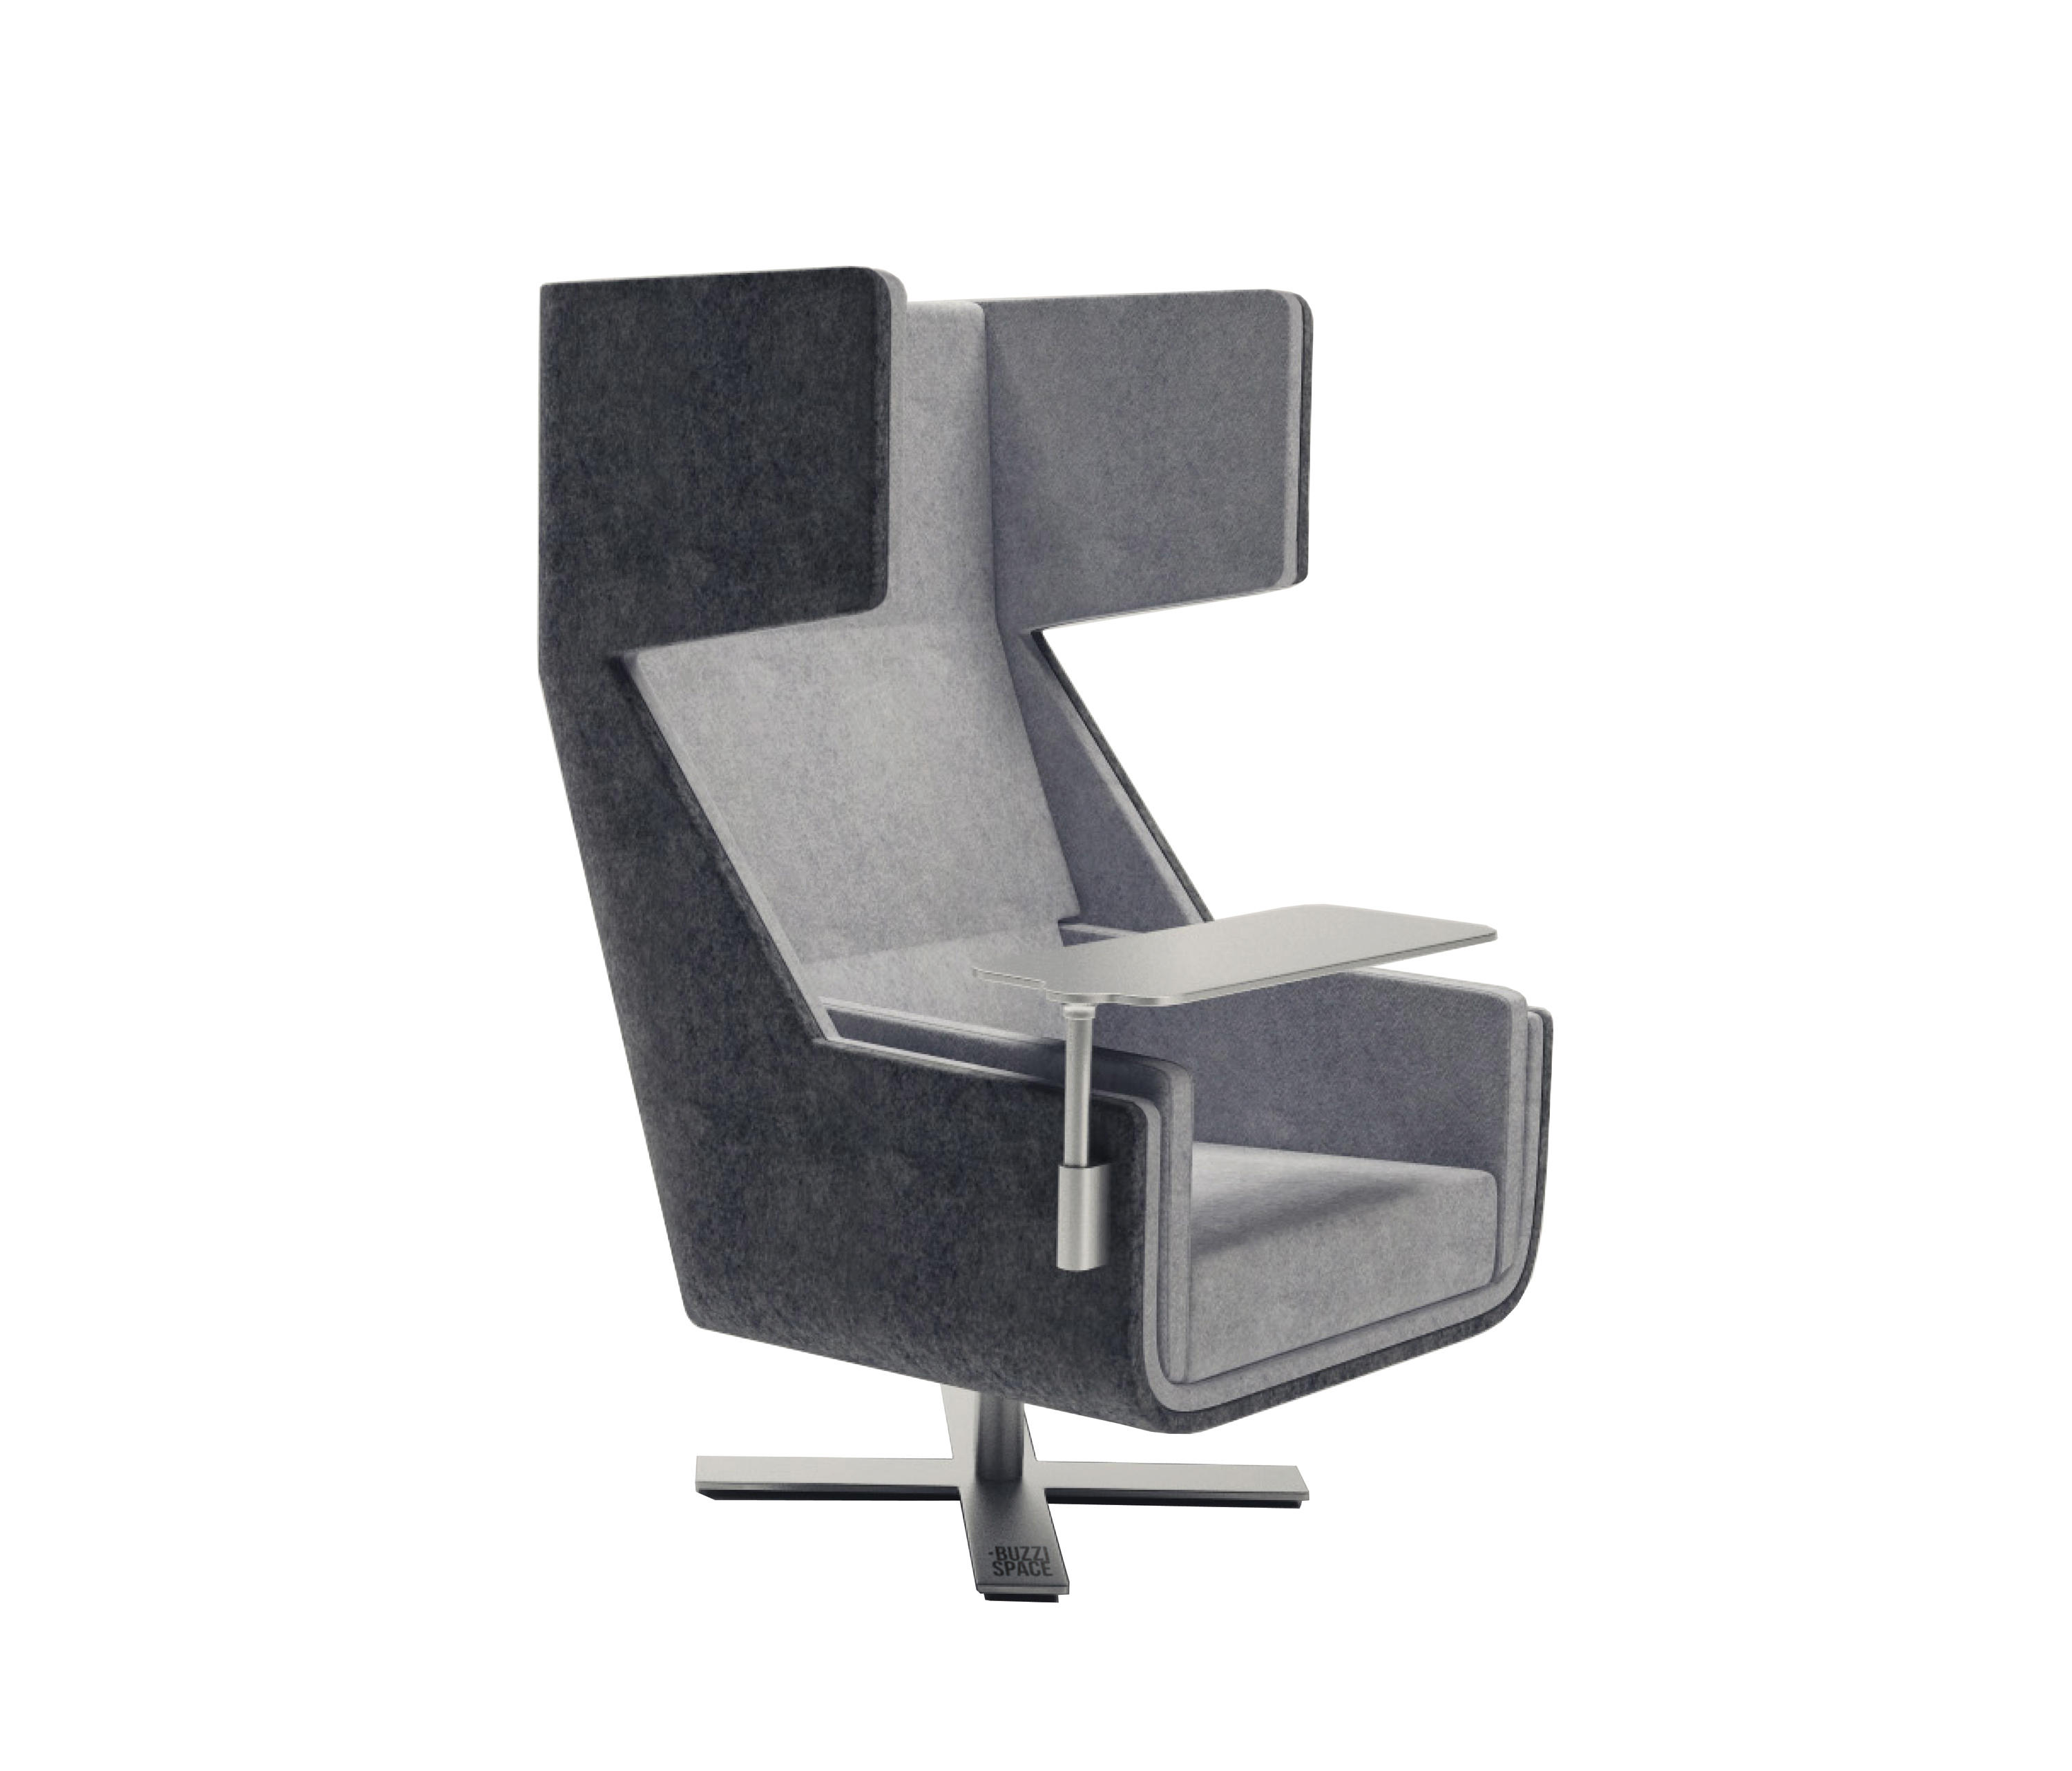 Rama for palau 2016 lounge chair - Buzzime Hotdesking Temporary Workspaces Buzzispace